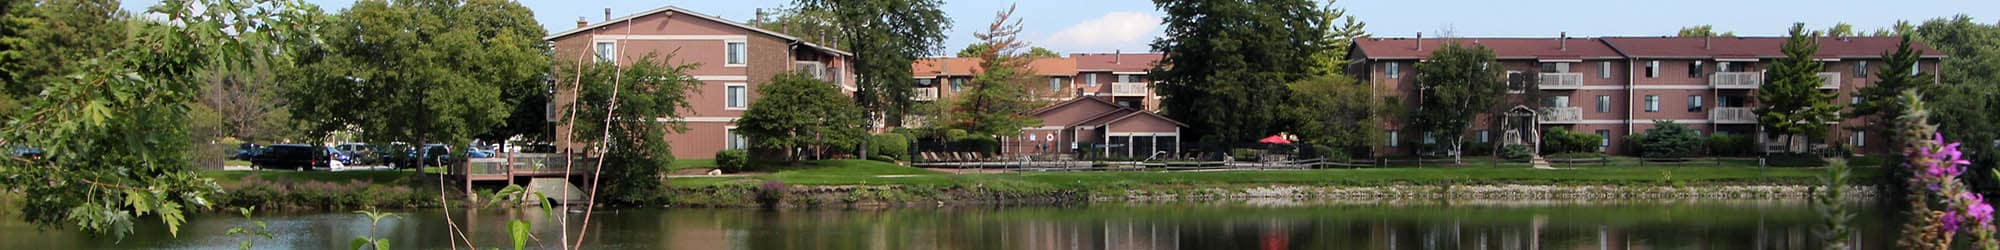 Neighborhood at Lakeside Apartments